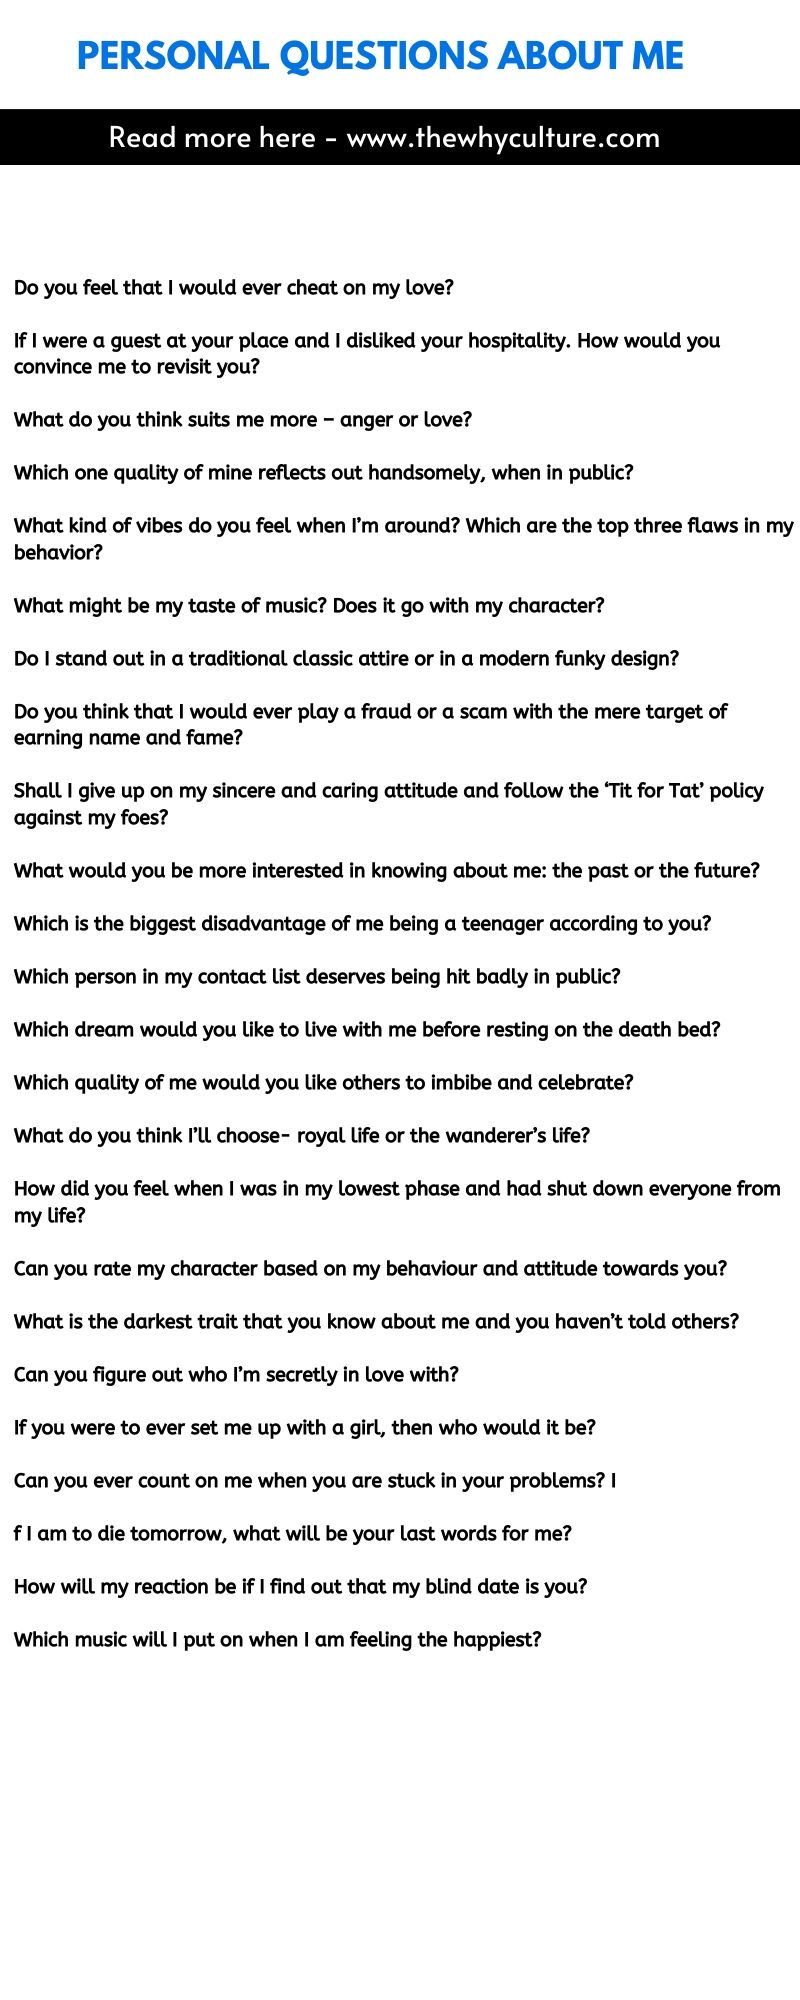 Personal questions about me - Download the list